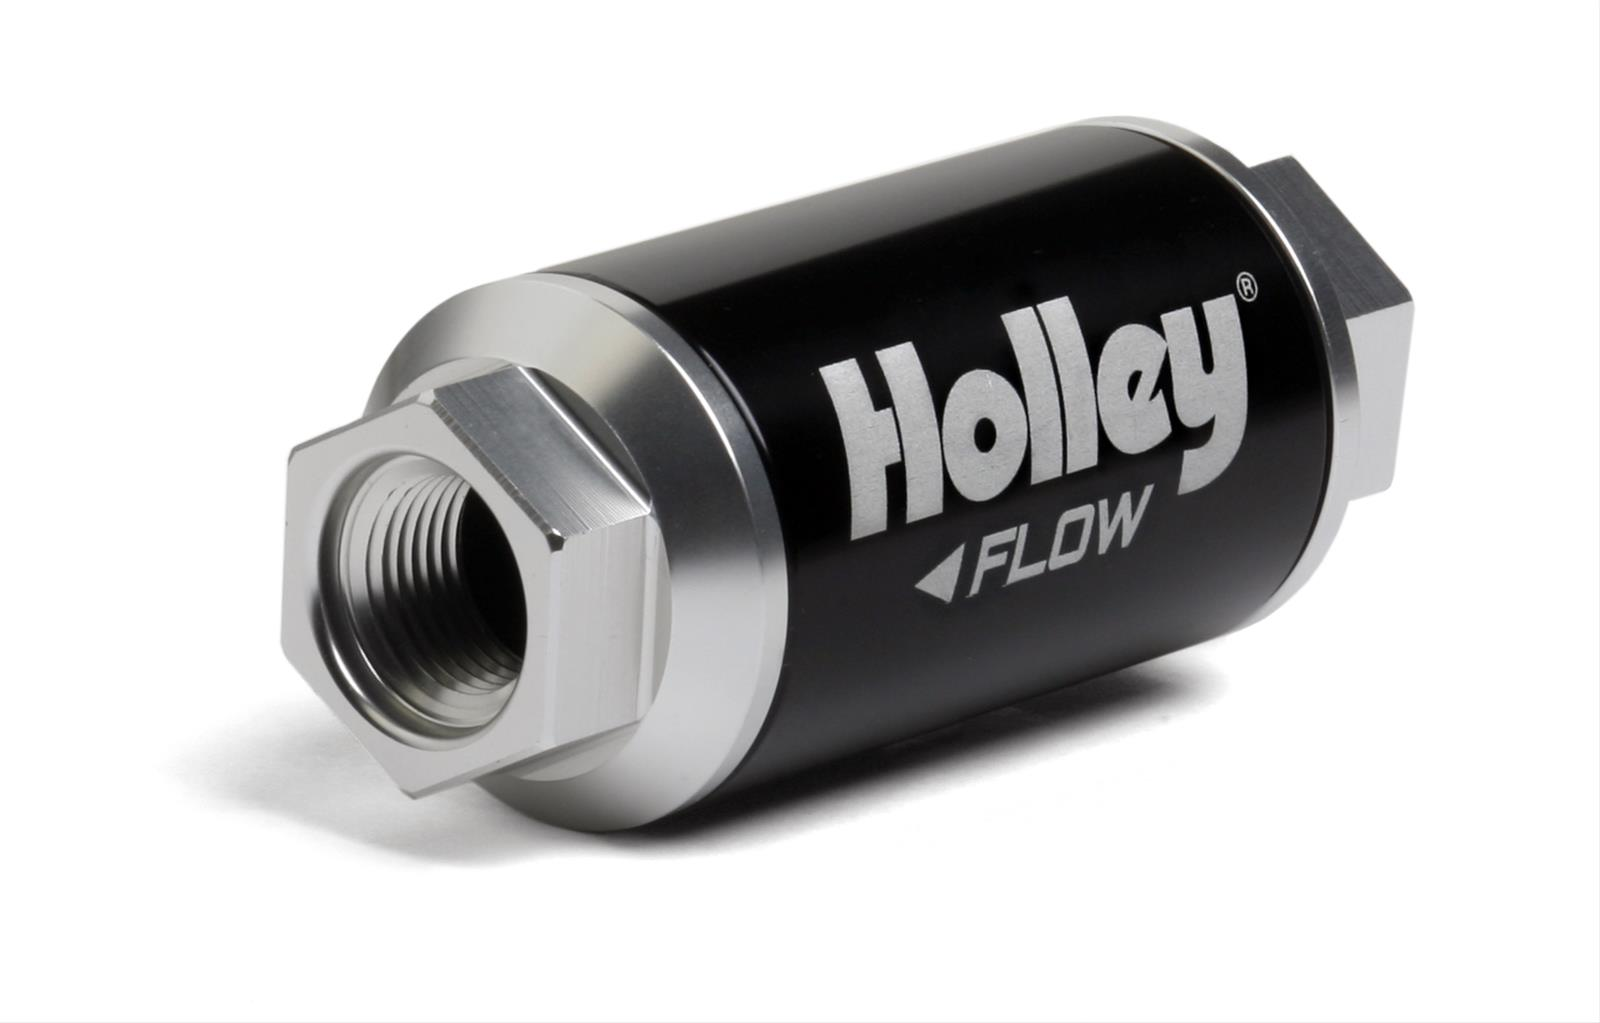 hight resolution of holley hp billet fuel filters 162 551 free shipping on orders over 99 at summit racing